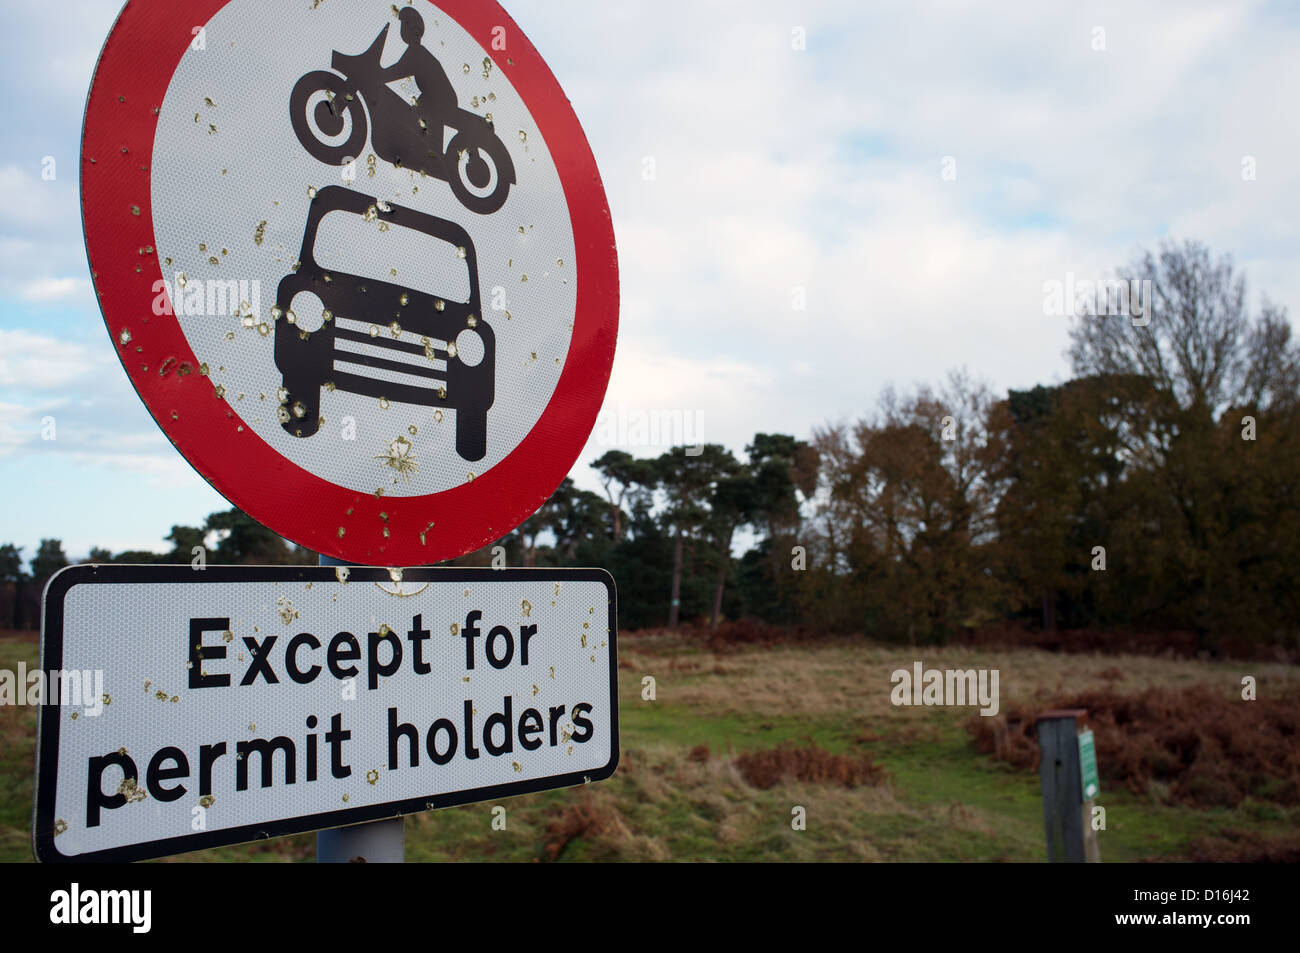 No motor vehicles except permit holders sign - Stock Image